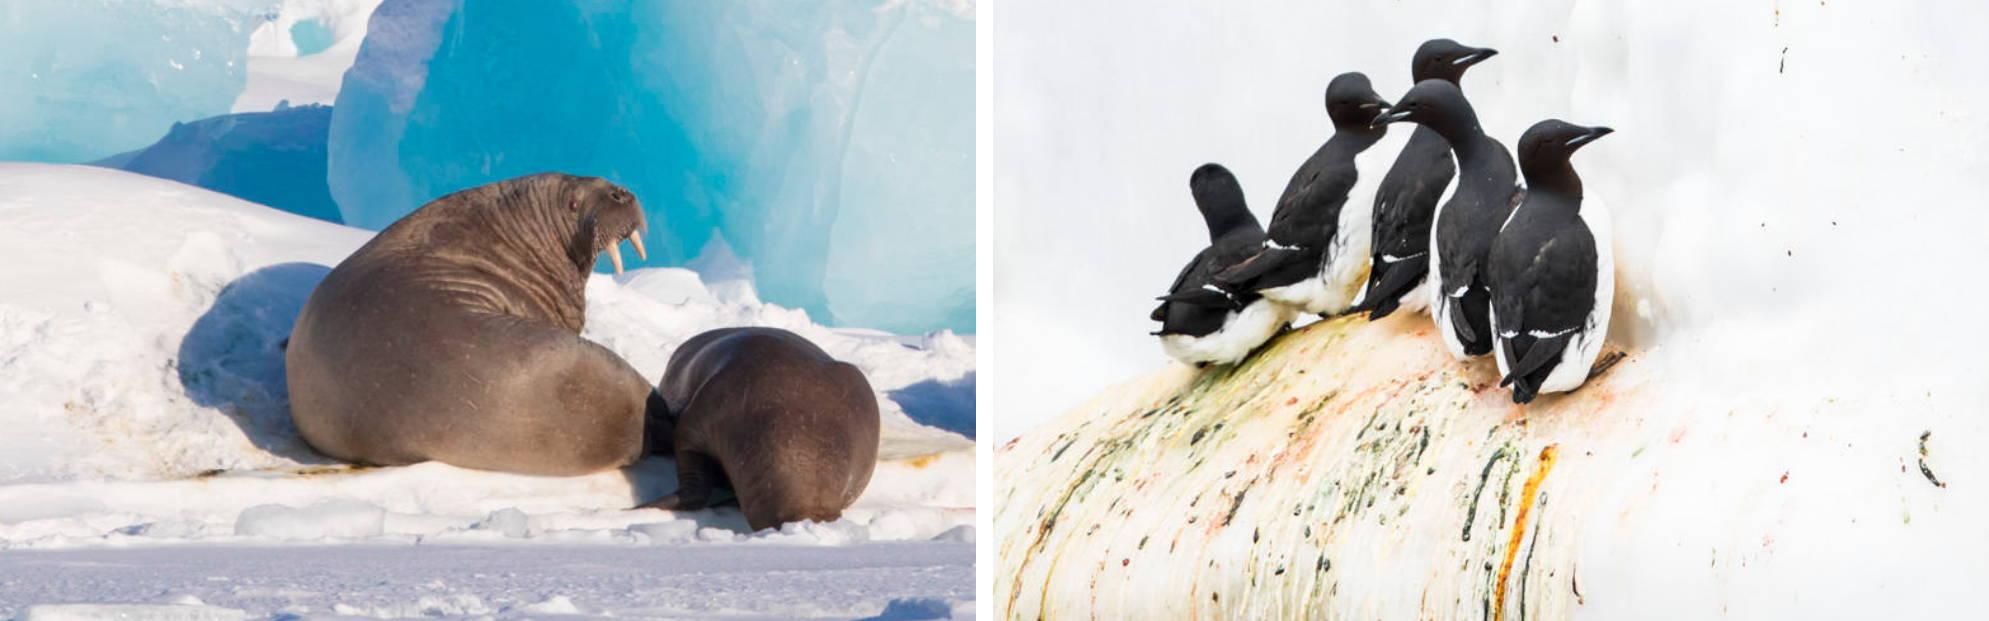 Peguins of Svalbard Norway Wildlife photography tour and expeditions